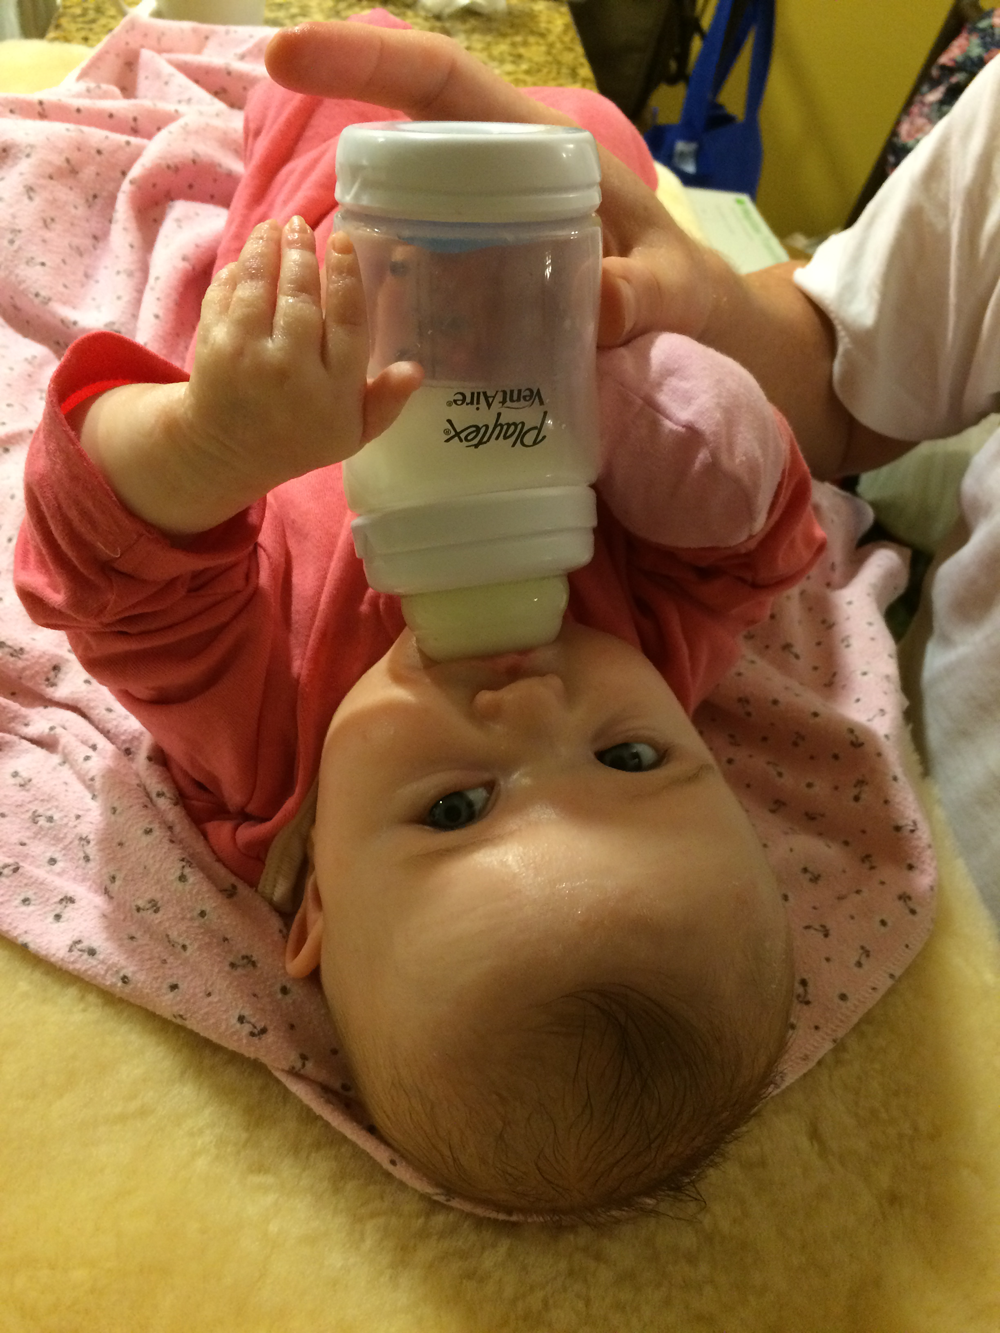 Holding her bottle